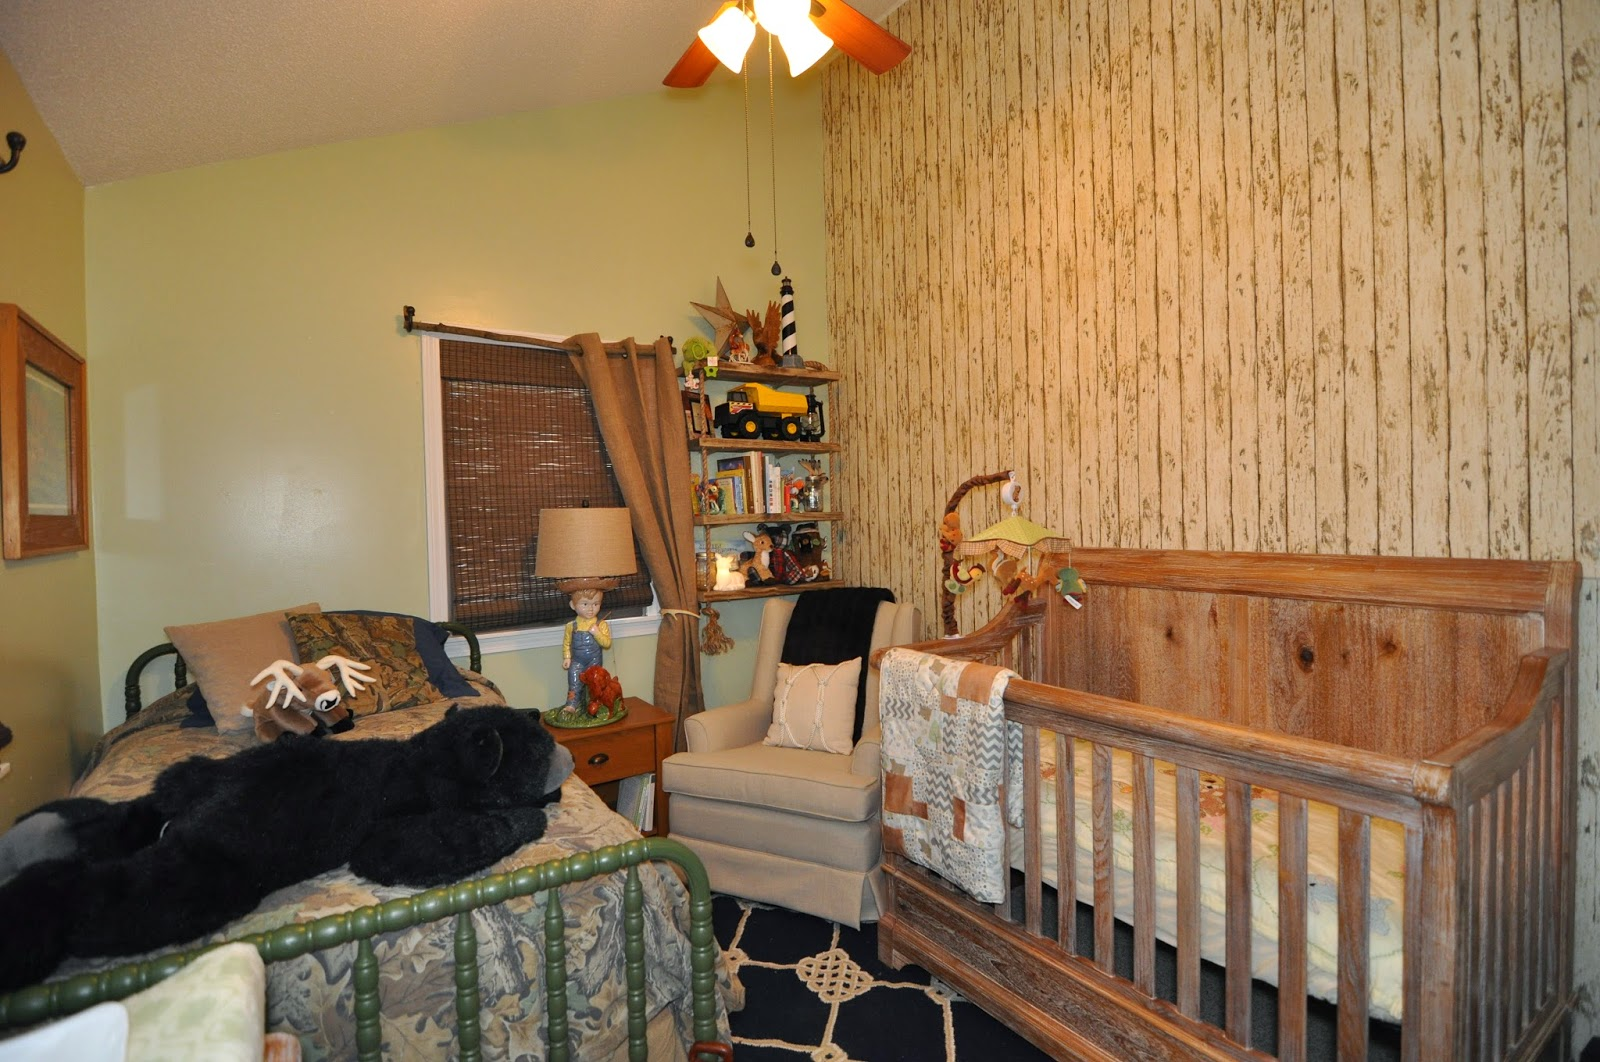 Camoflauge, Rustic Wood, Green, Outdoorsy Hunting Nursery, Boys Nursery